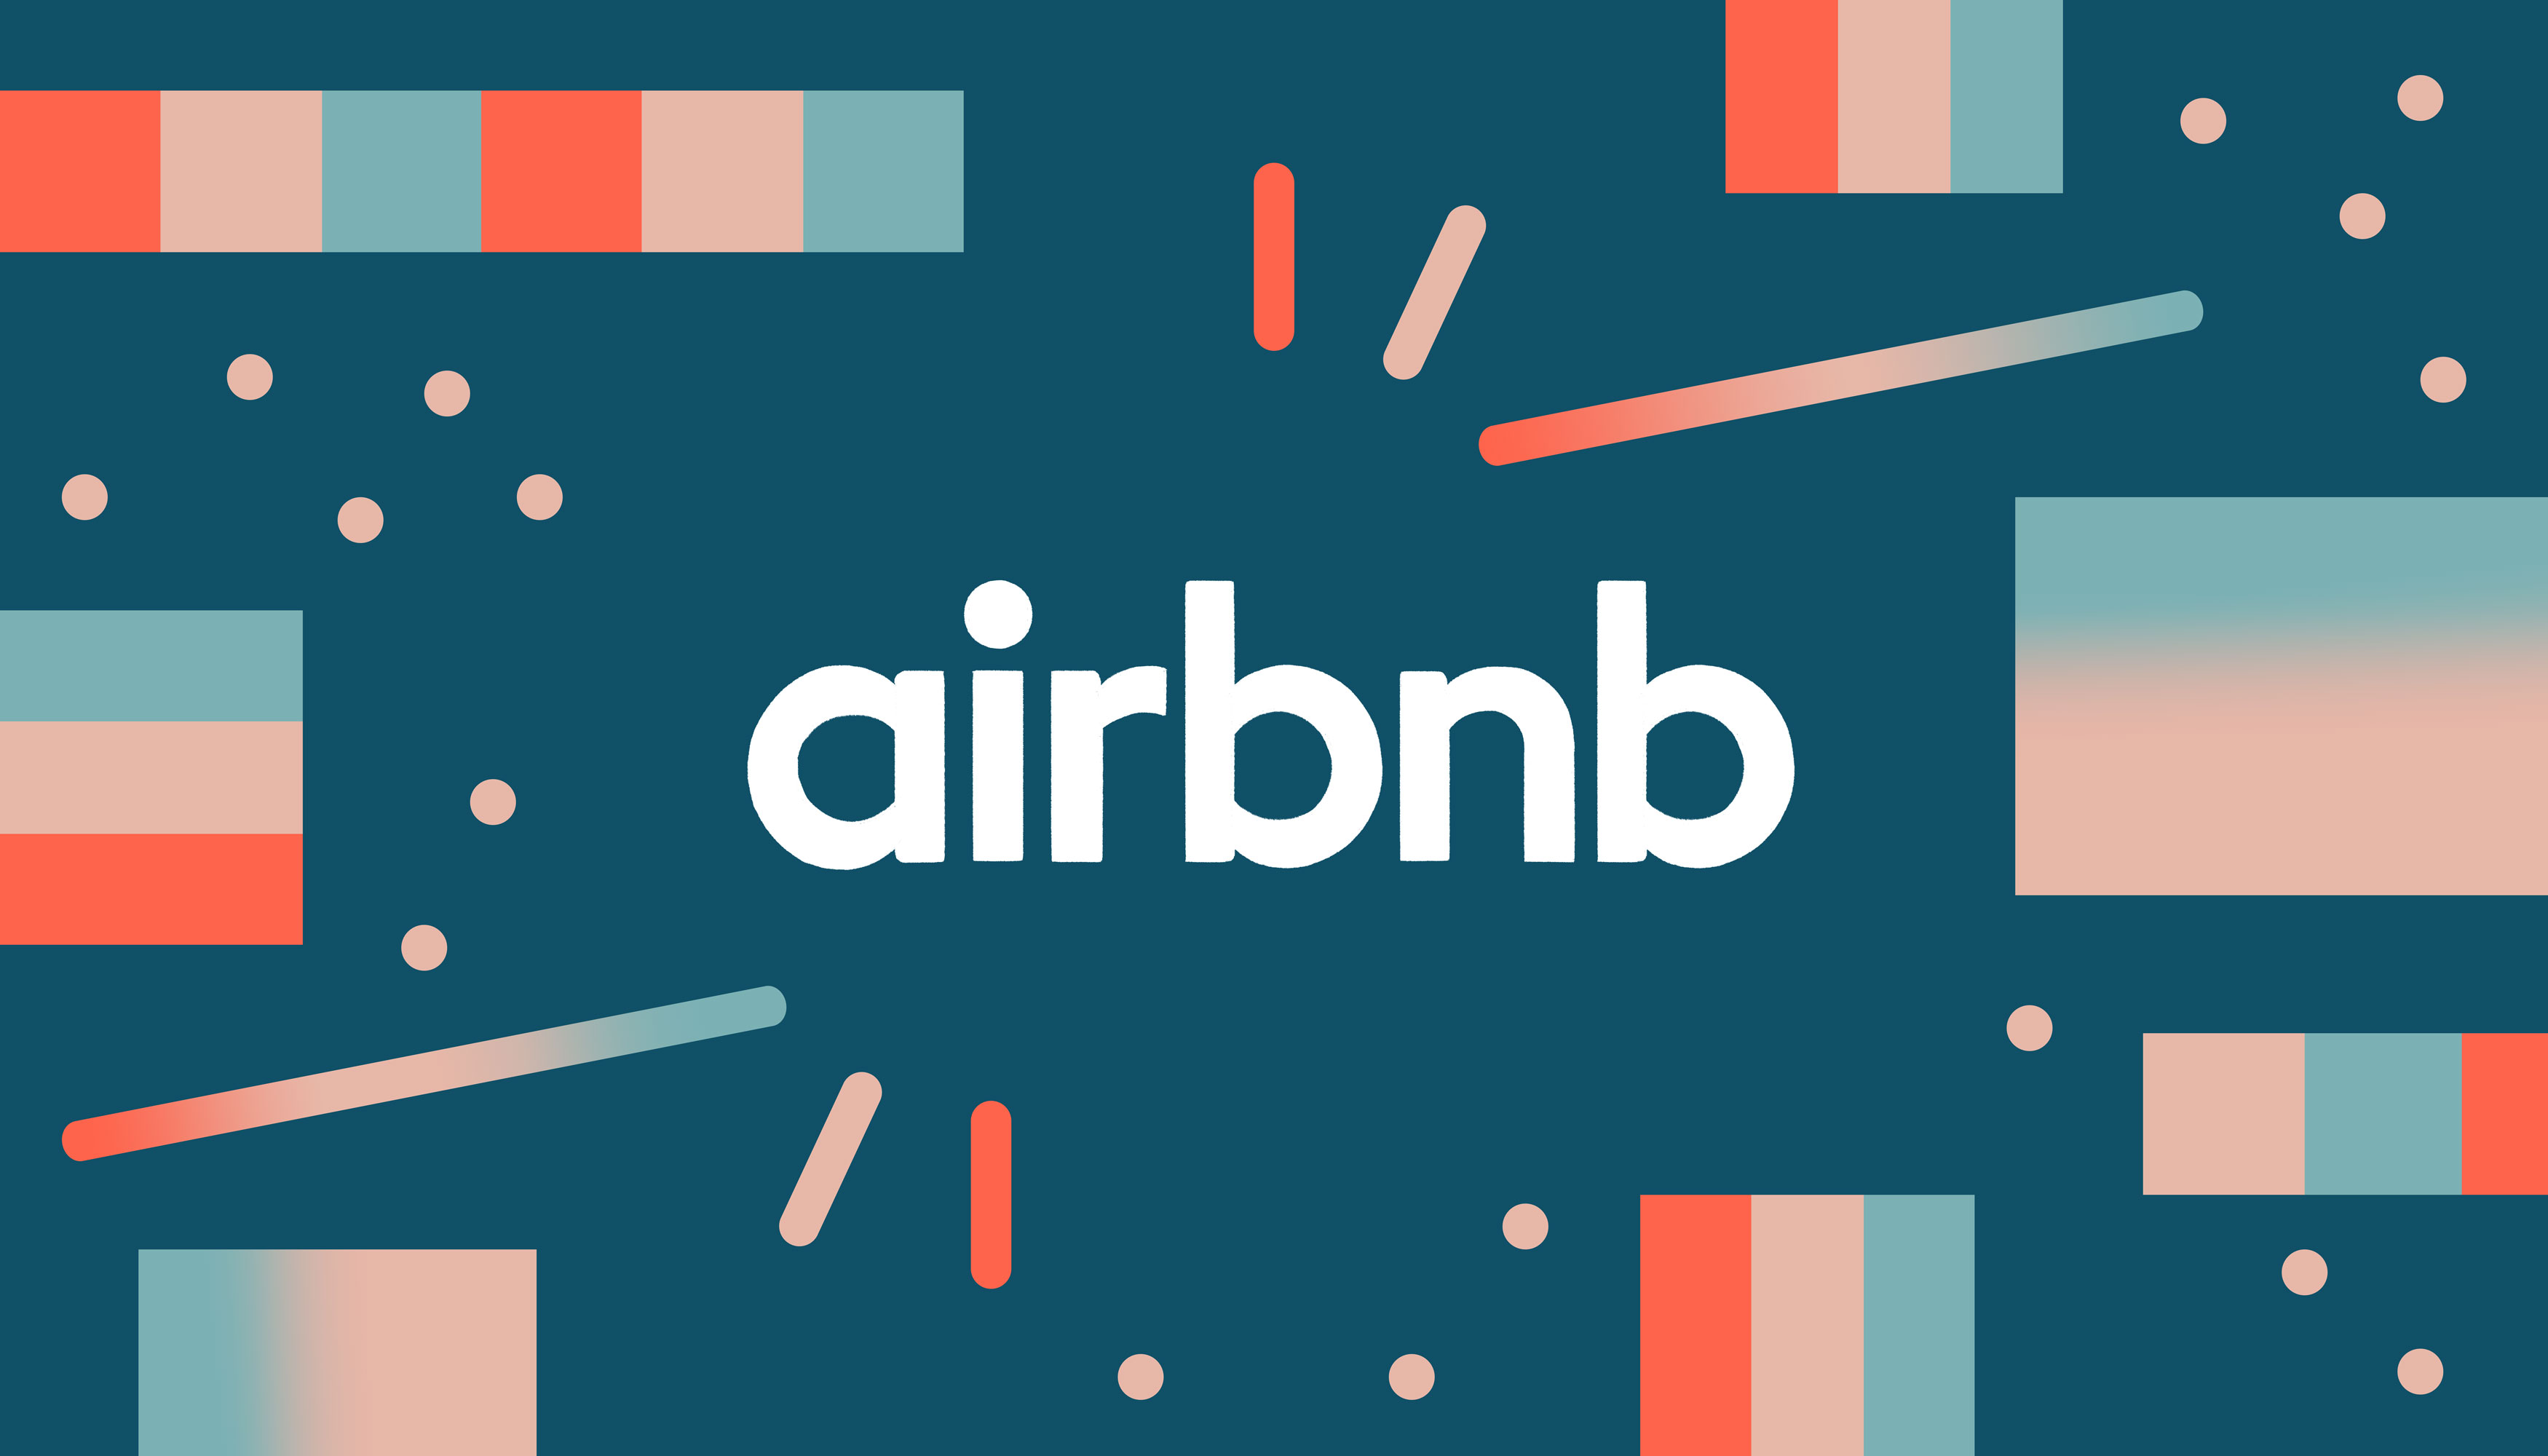 Airbnb buys HotelTonight to build 'end-to-end travel platform'